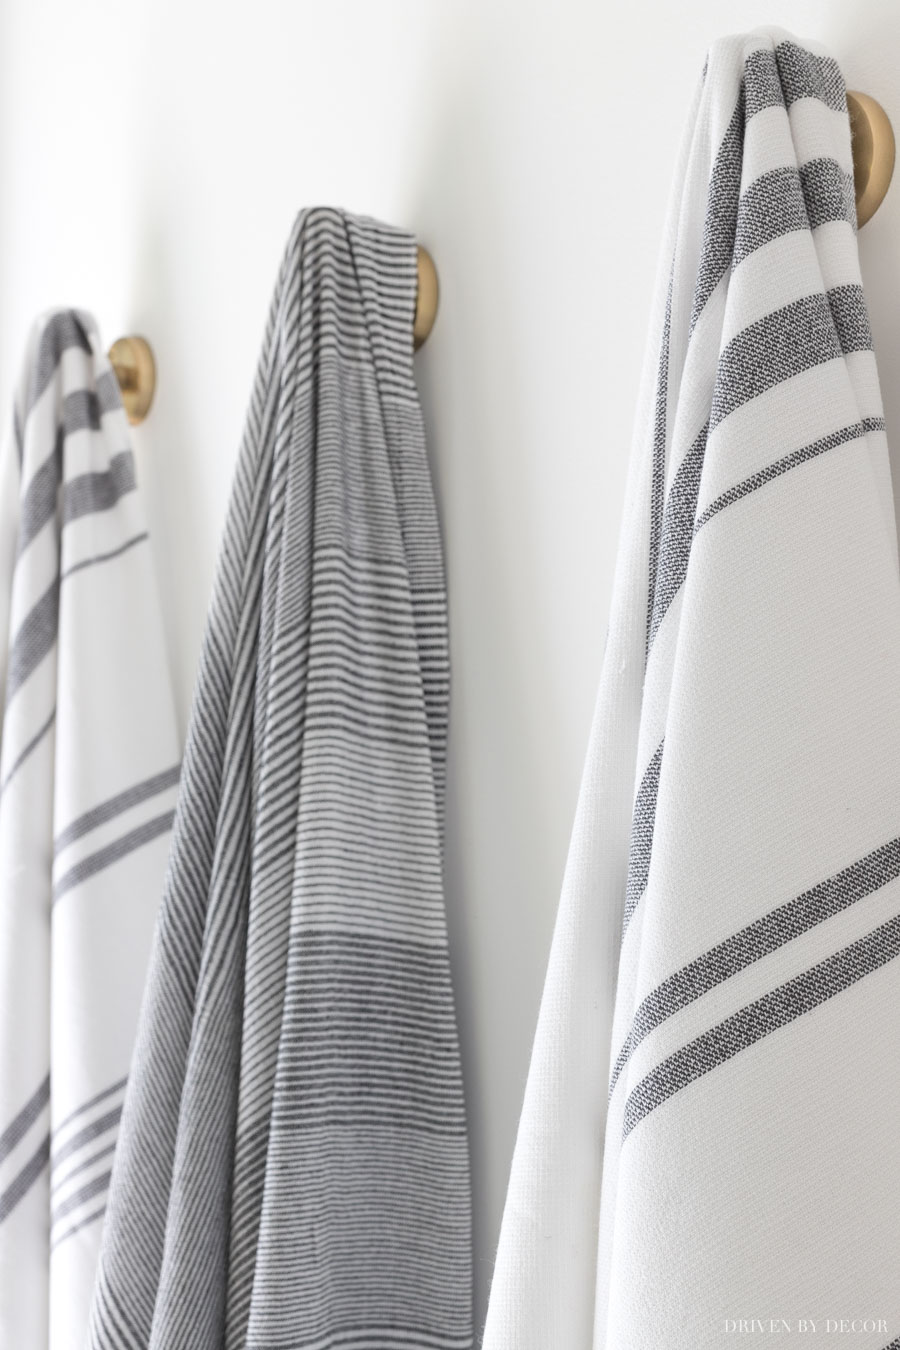 Loving the strriped towels on robe hooks in this bathroom!